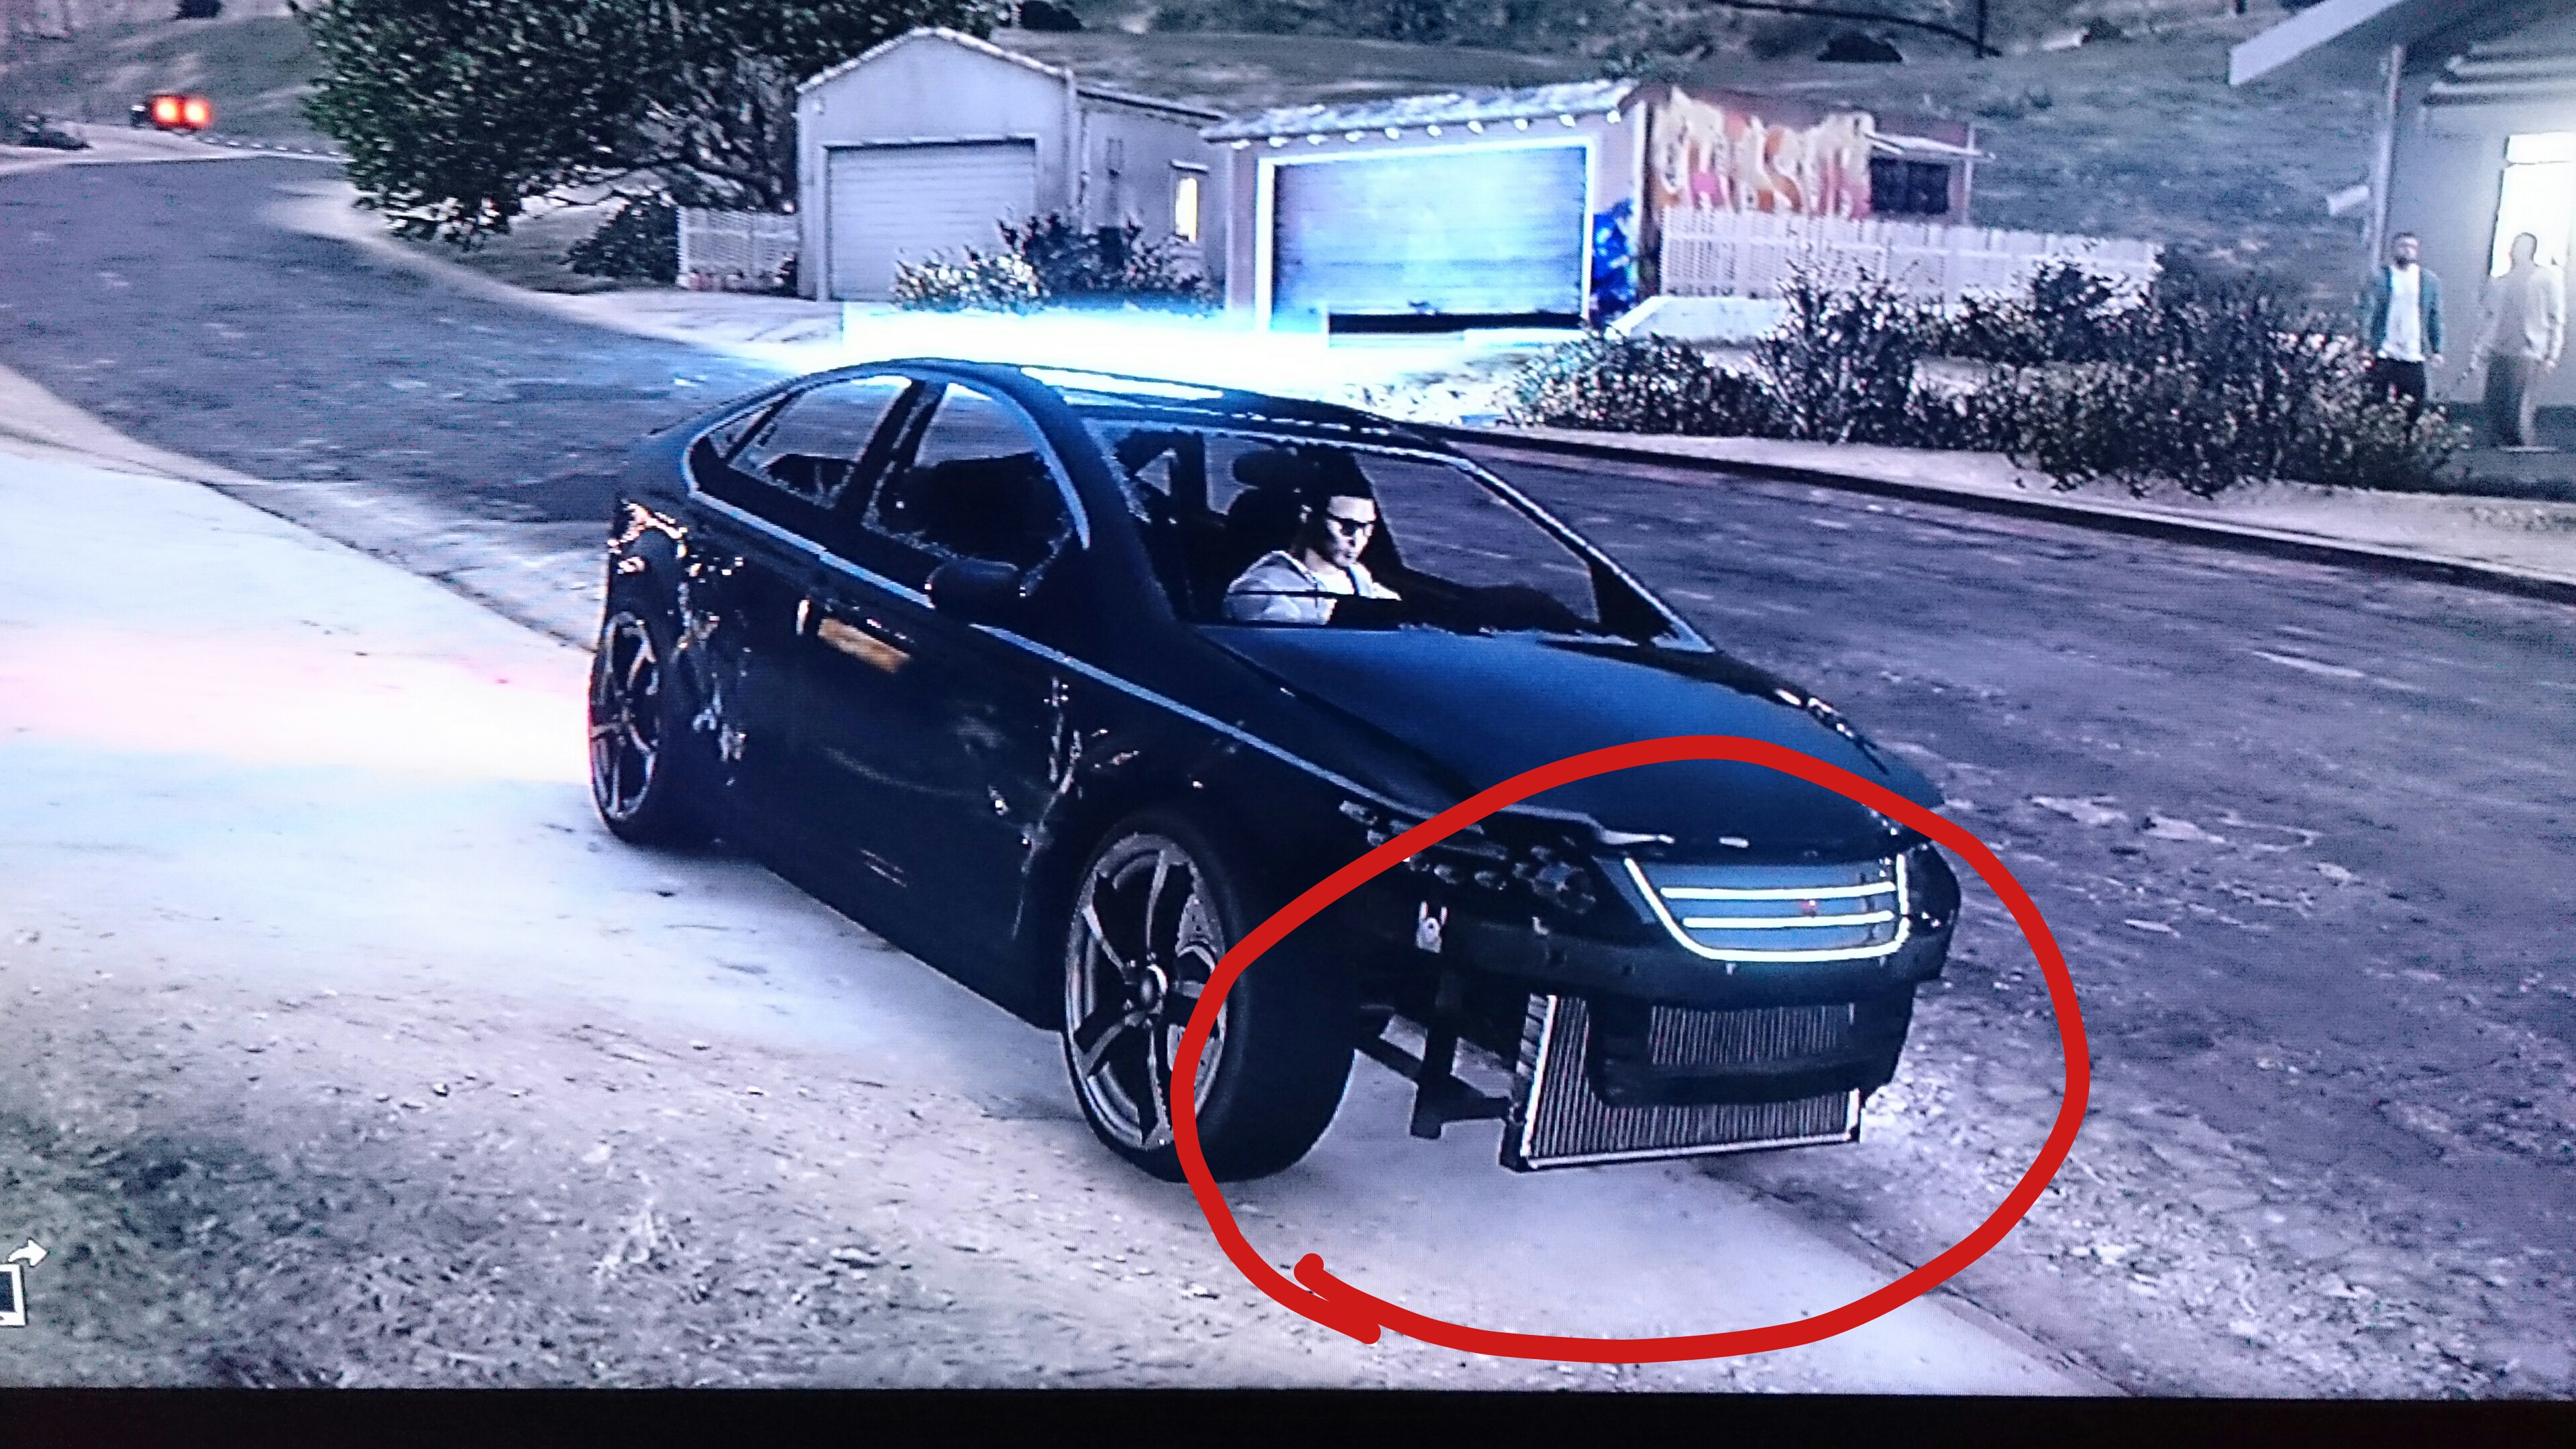 Intercooler On An Electric Car Gta V Logic